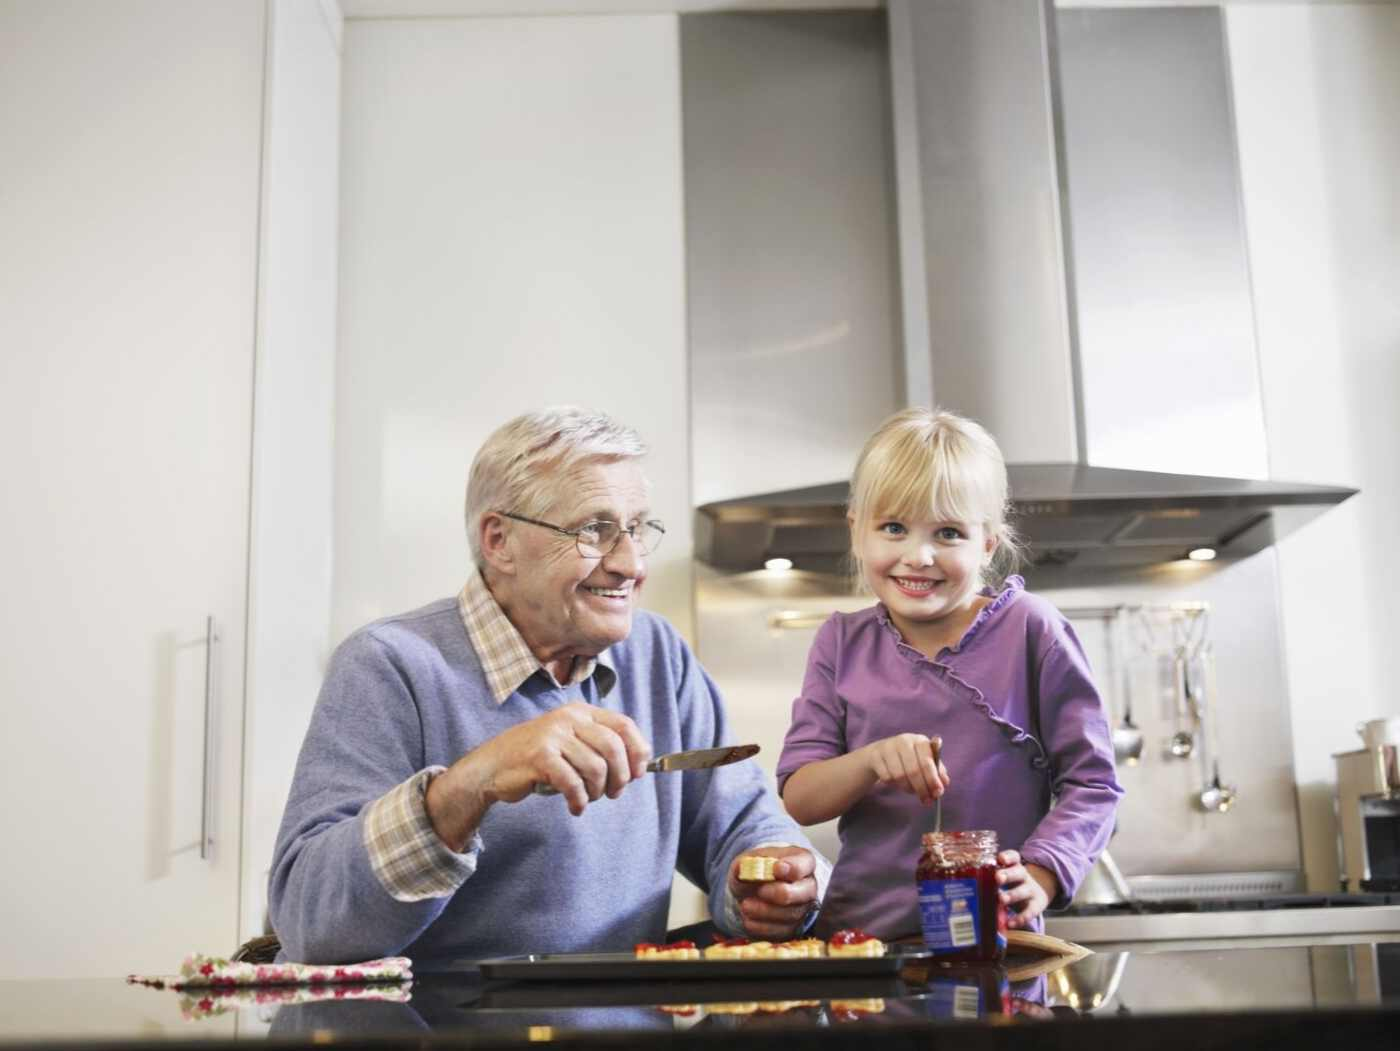 Senior avoiding malnutrition by preparing healthy food with a young girl.